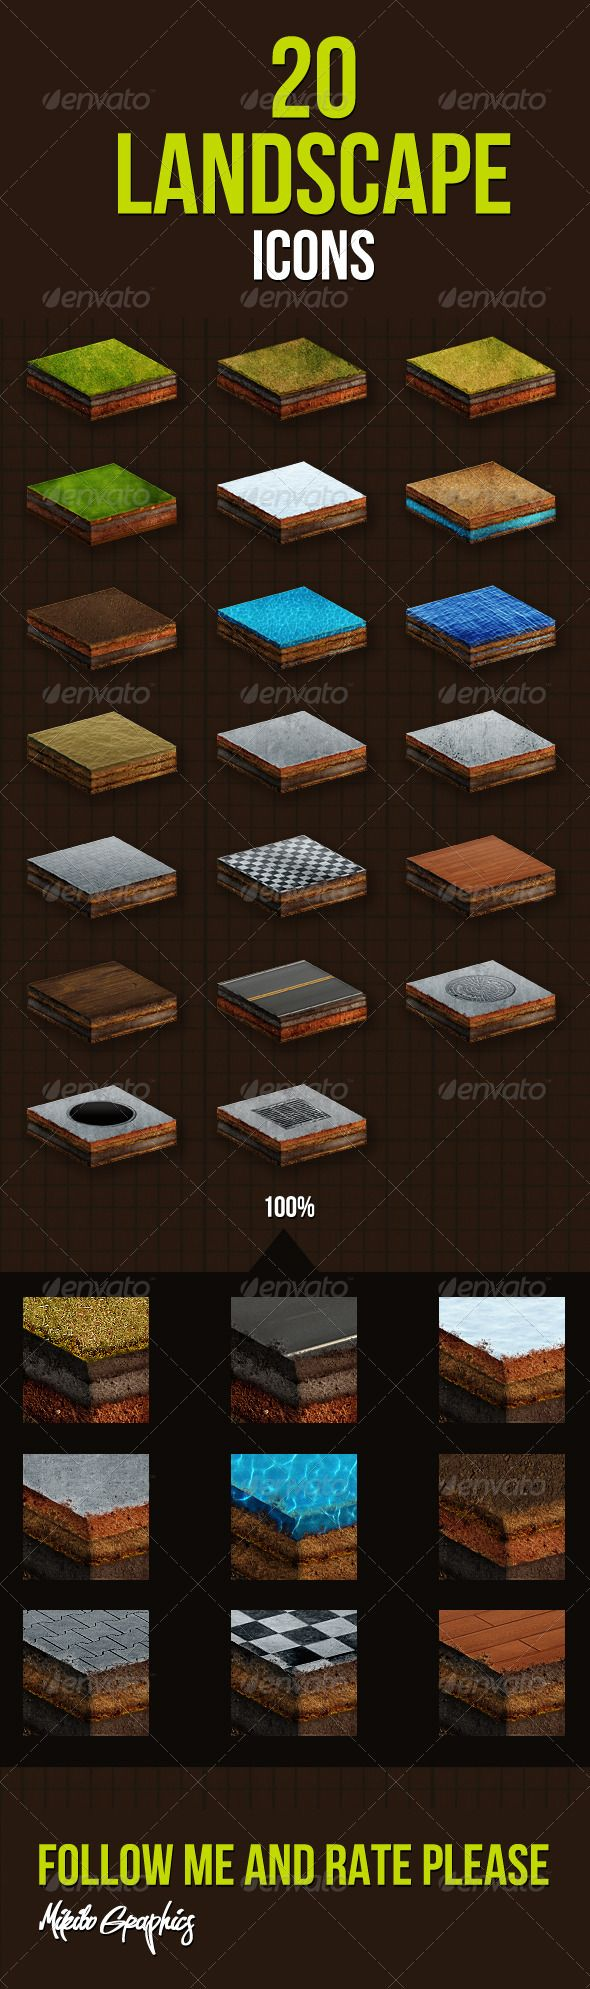 20 Landscape Icons  #GraphicRiver         20 Landscape Icons :  	 This set includes 20 Landscape Icons:  	 Grass, Snow, Desert, Gravel, Water, Dirty Water, Ocean, Concrete, Tile, Floor, Road, Sewer.  	 This set is perfect for web design projects  	   	   	   	      Created: 22November12 GraphicsFilesIncluded: PhotoshopPSD HighResolution: Yes Layered: Yes MinimumAdobeCSVersion: CS Tags: 20LandscapeIcons #concrete #desert #dirtywater #floor #grass #gravel #icons #mikibo #ocean #road #sewer…